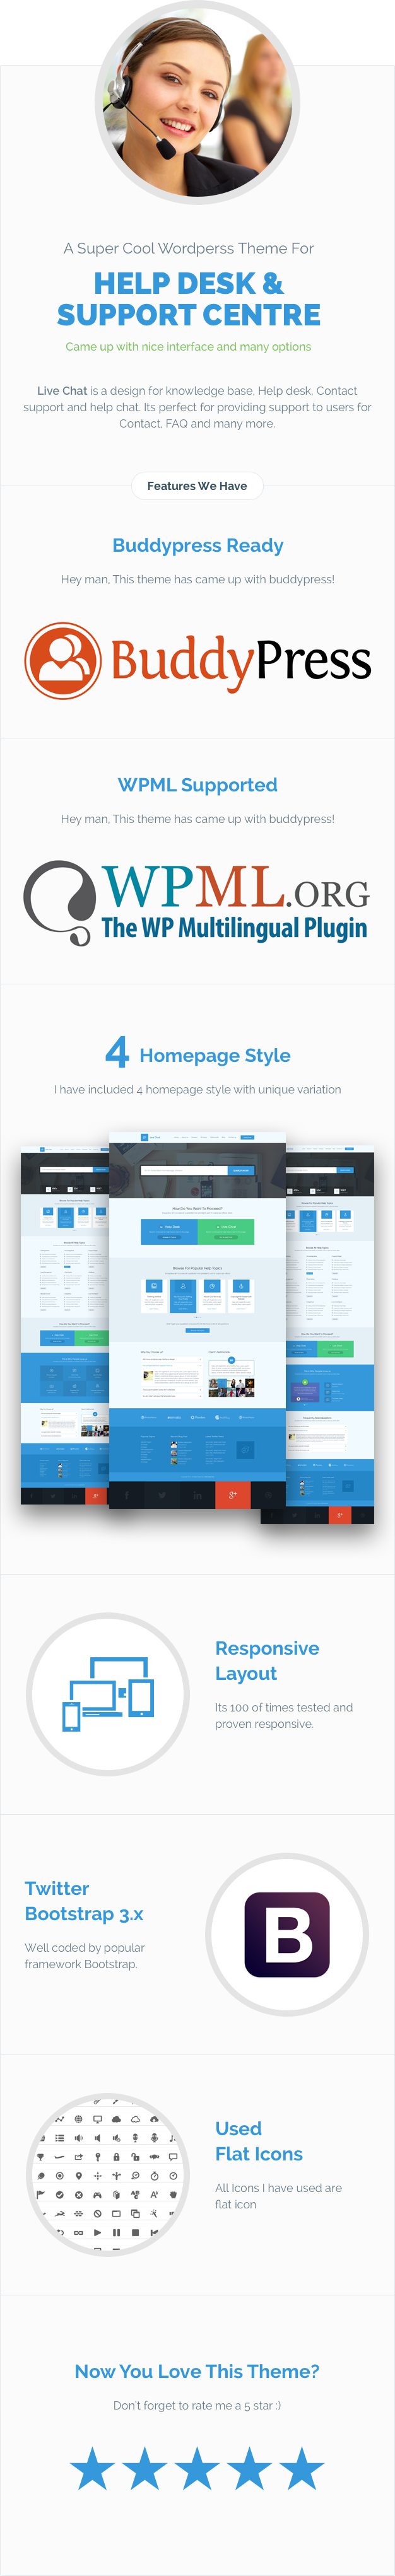 6PXCV1b Live Support - Helpdesk Responsive WordPress Theme theme WordPress